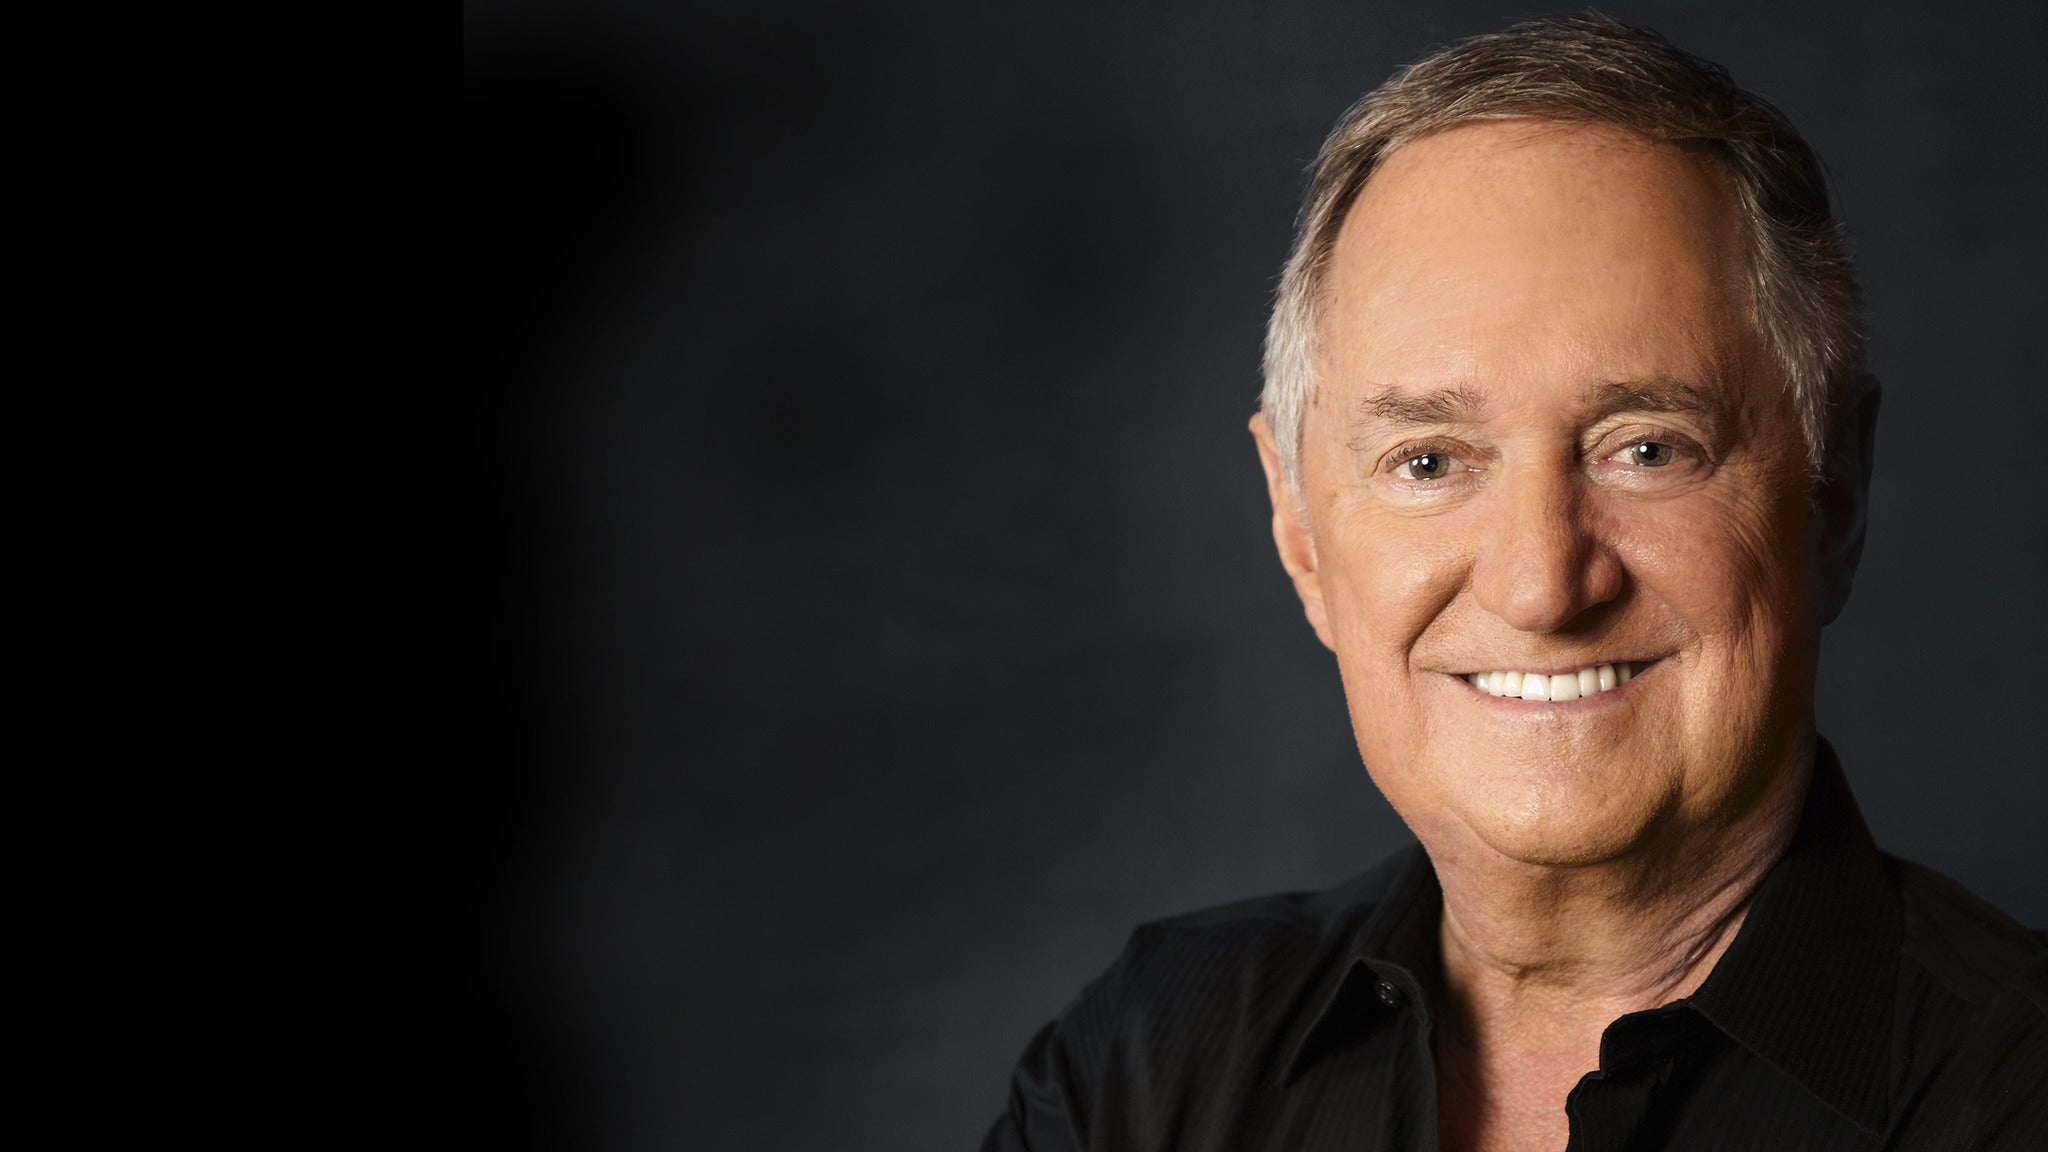 Neil Sedaka at McCallum Theatre